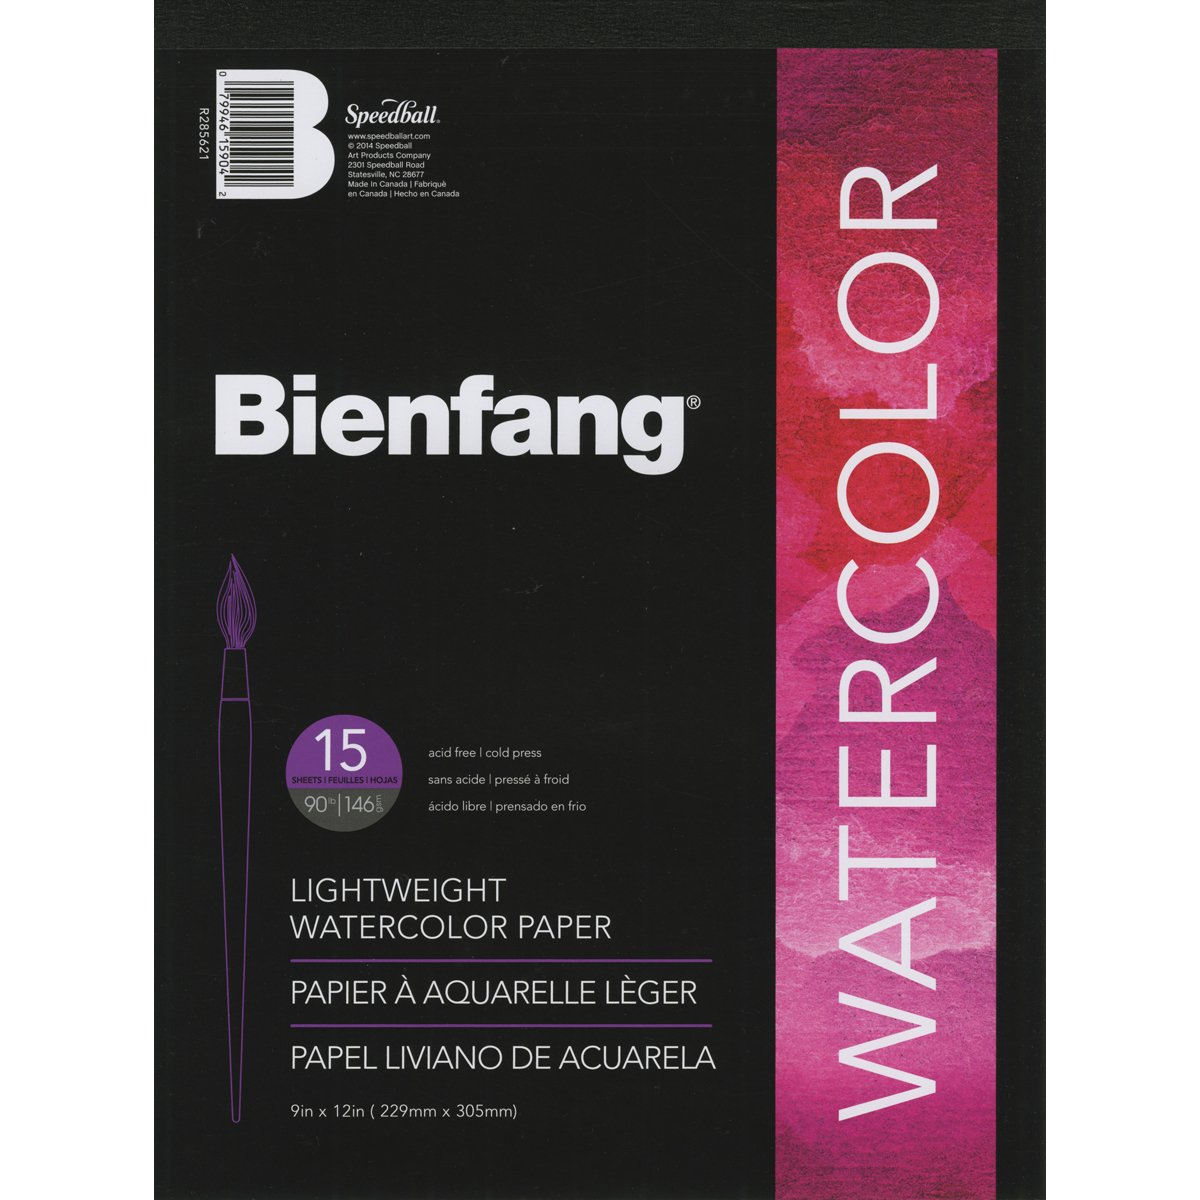 Speedball Art Products Bienfang Aquademic 9-Inch by 12-Inch Watercolor Paper Pad, 15 Sheets R285621